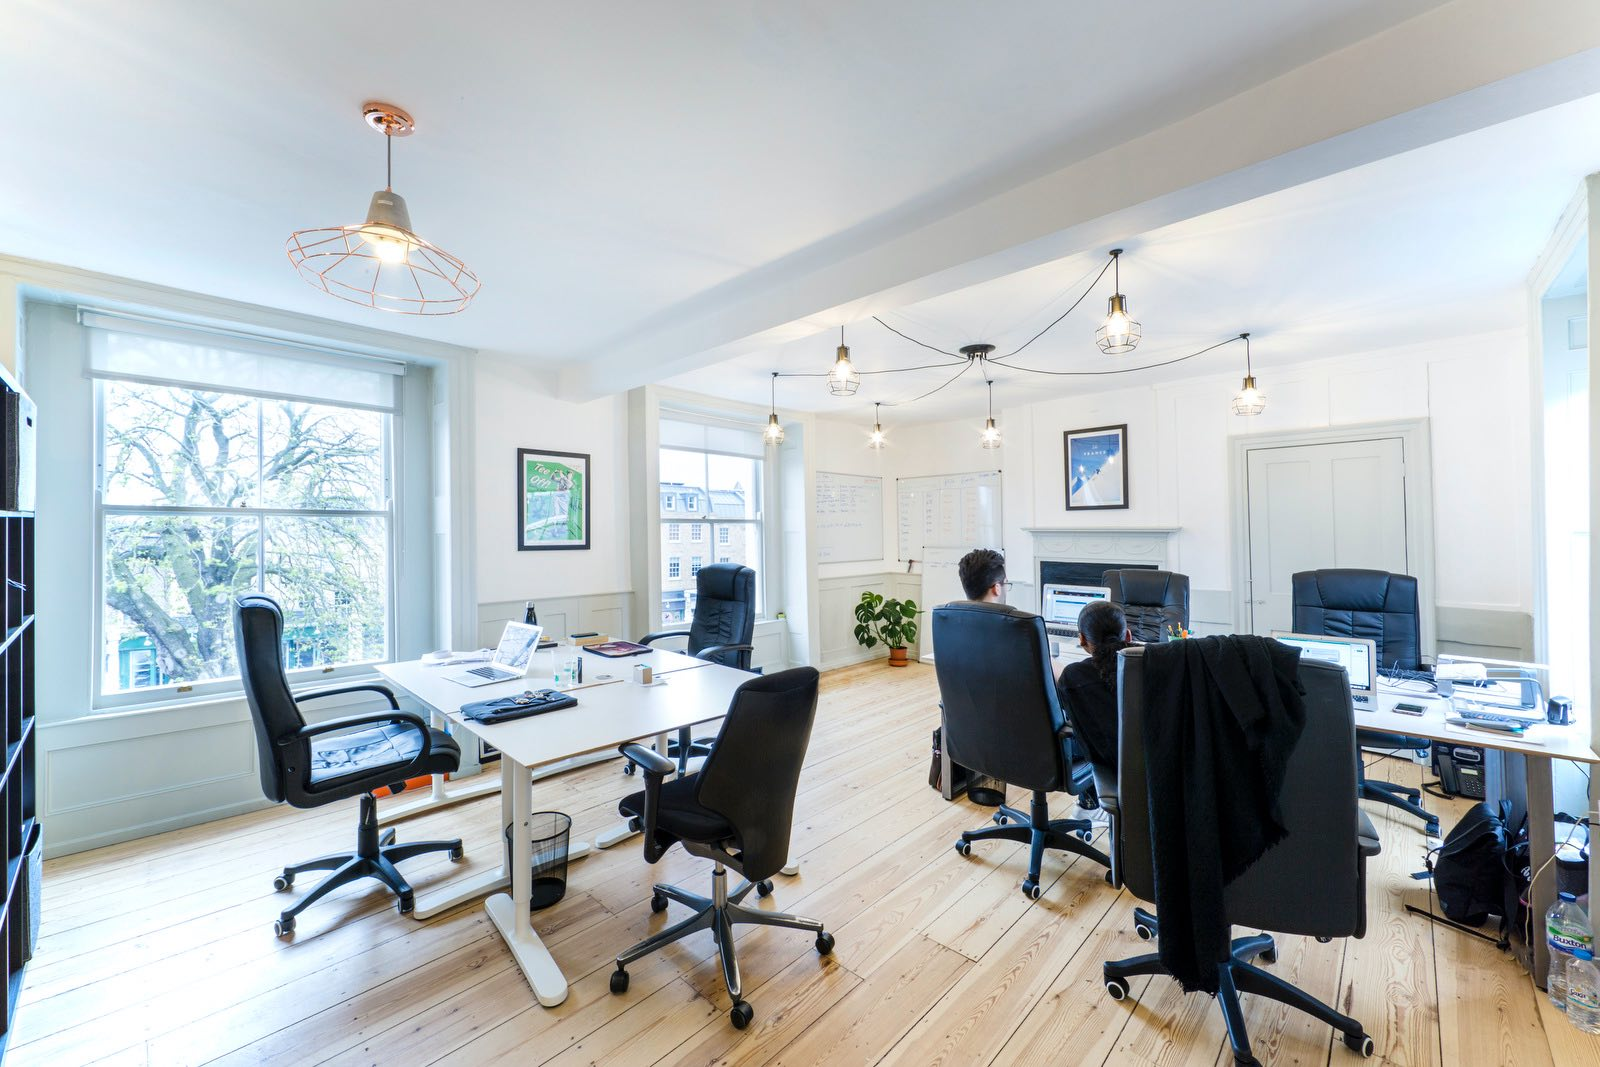 A guide to office rent in London - Office rent in Dalston